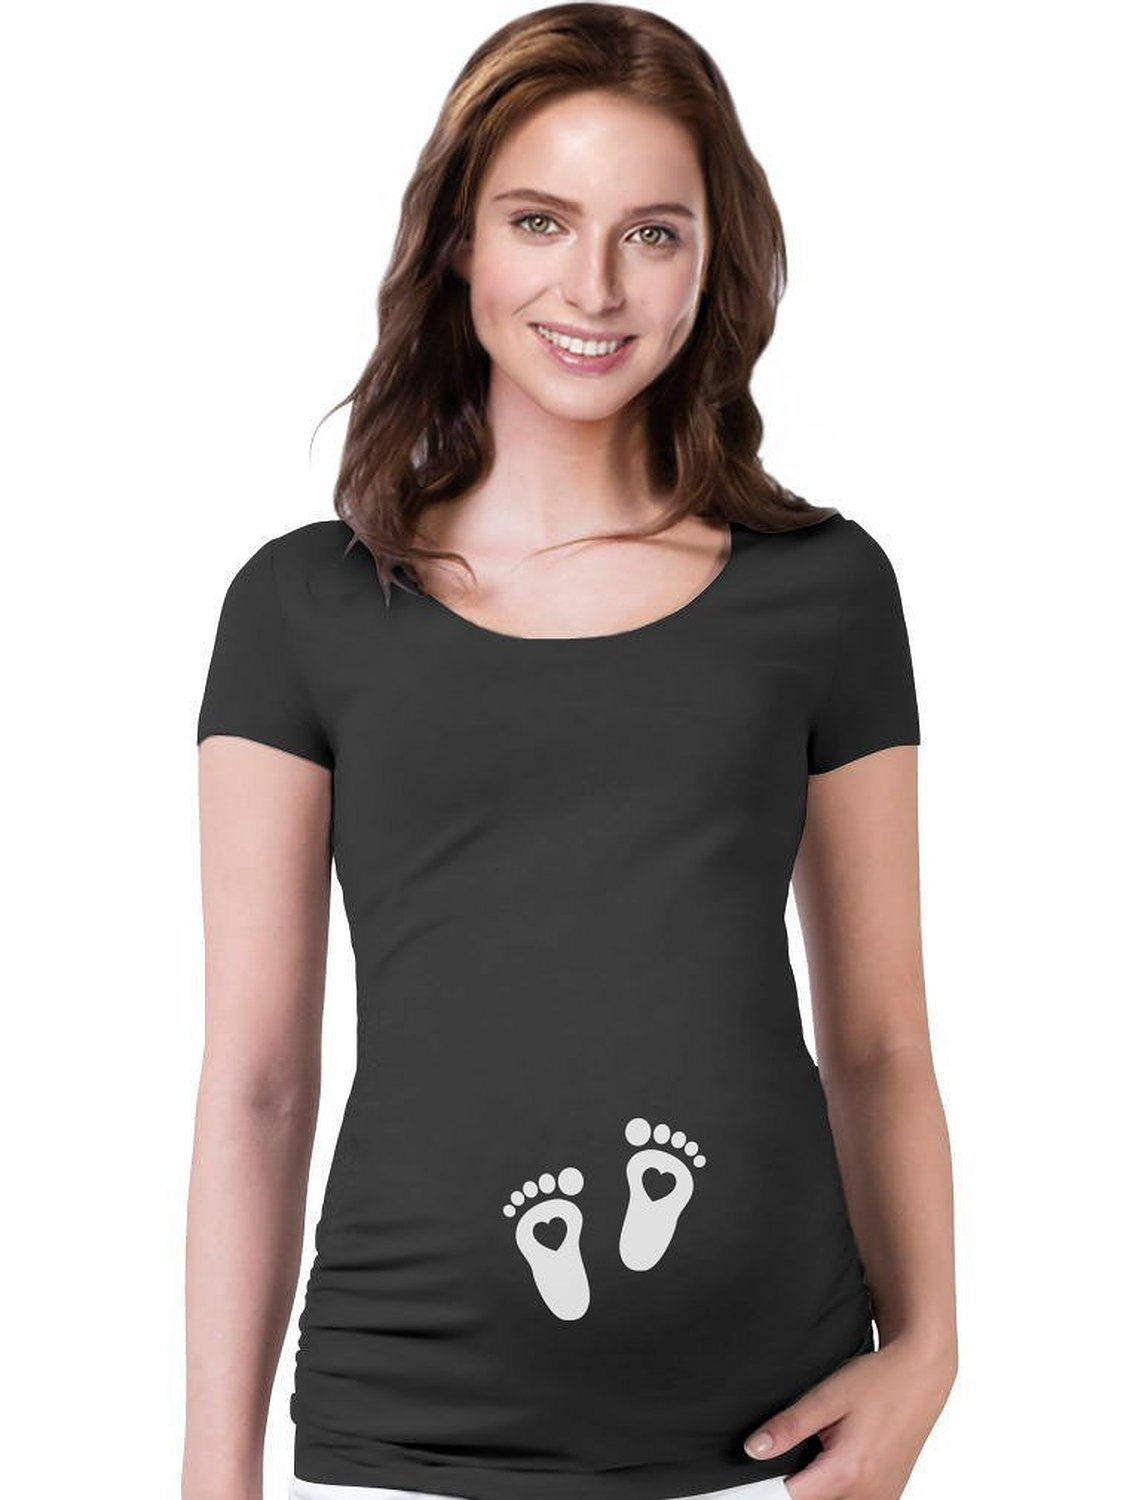 Very Cute Baby Footprints – Pregnant Mom to Be – Maternity Shirt